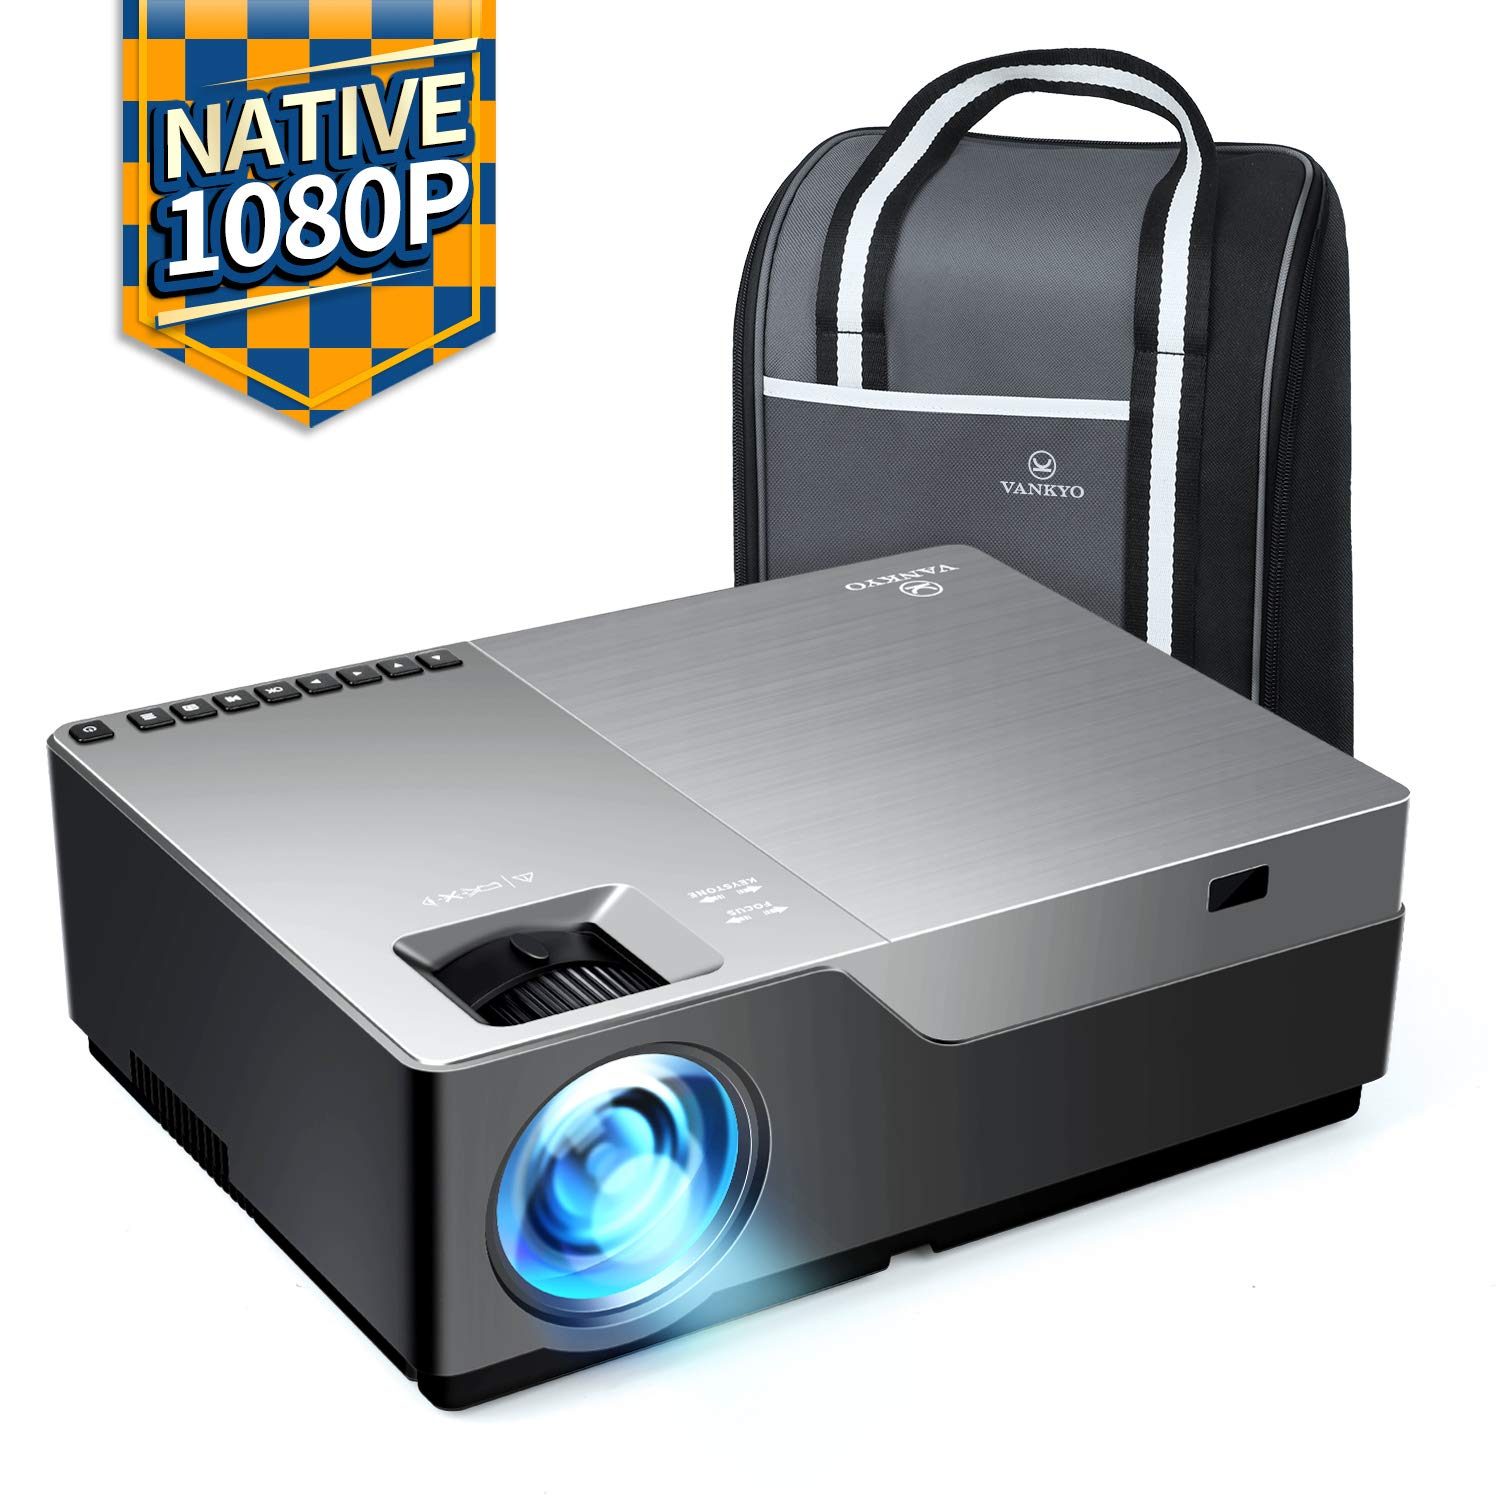 VANKYO Performance V600 Native 1080P LED Projector - Projectors for Conference Room